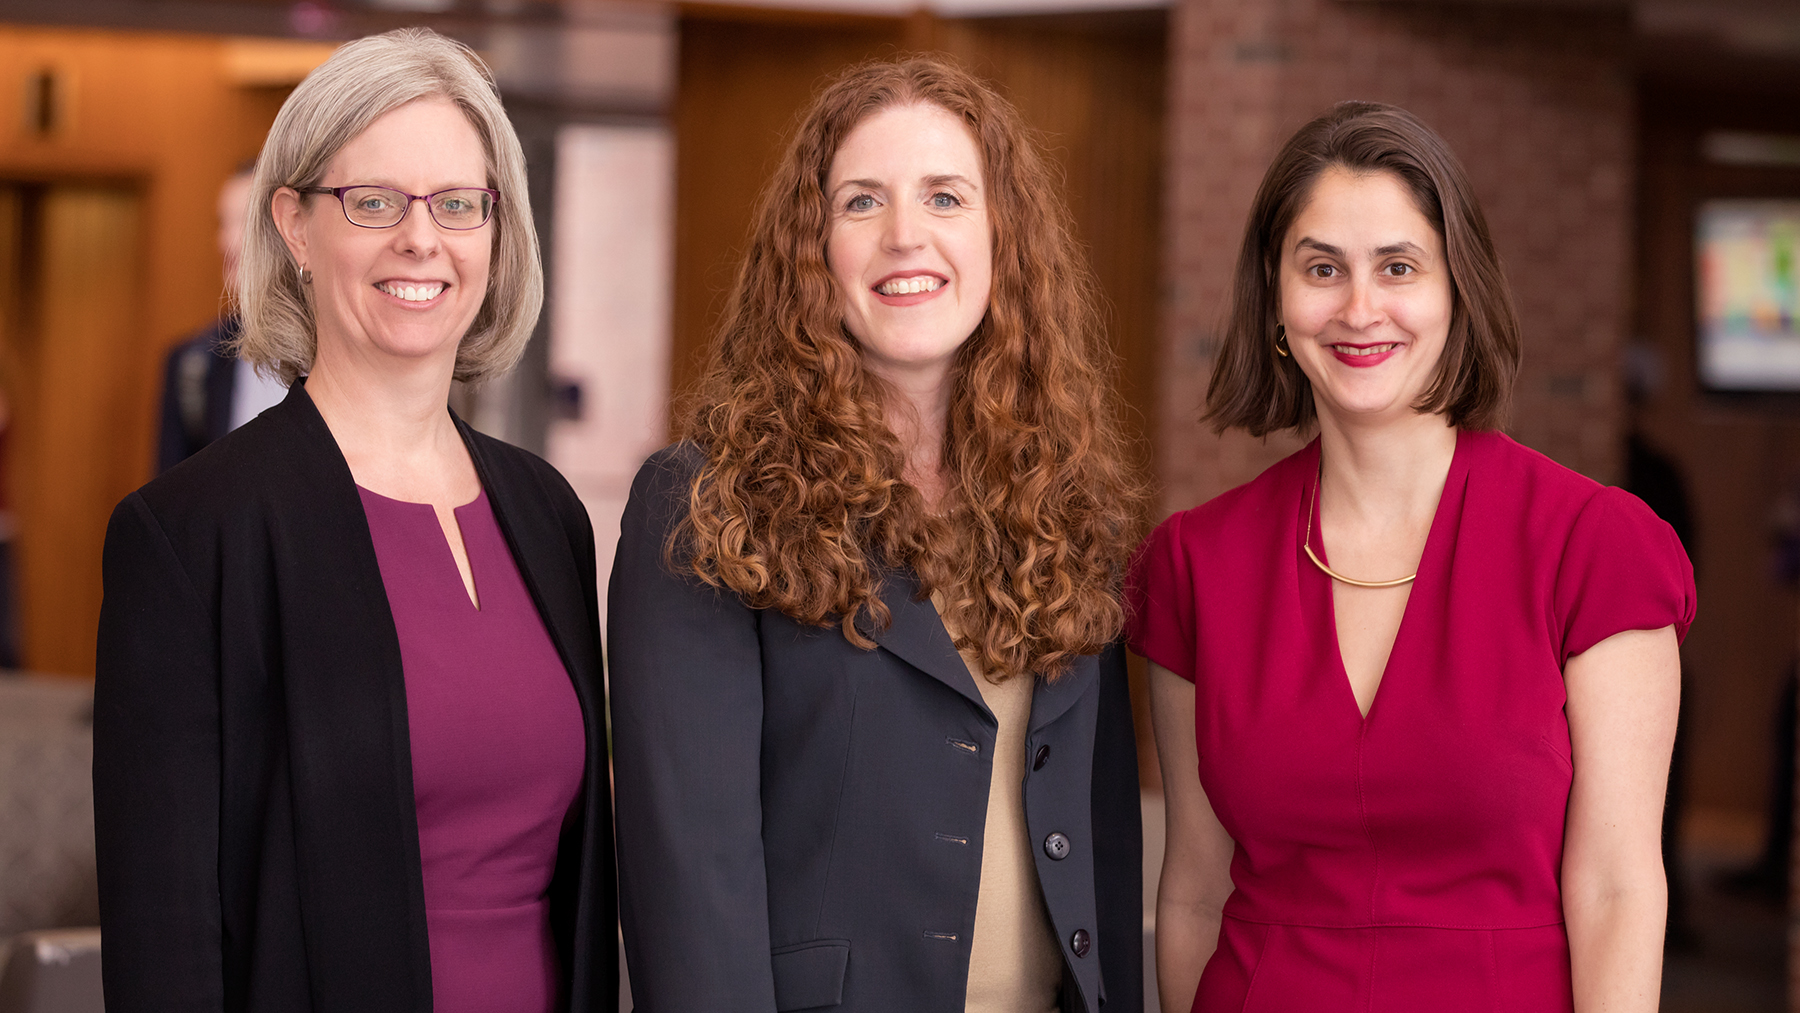 Jennifer Robbennolt, the associate dean for research at the College of Law and co-director of the Program on Law, Behavior, and Social Science; Colleen Murphy, the director of the Women and Gender in Global Perspectives Program at Illinois; and Lesley Wexler, a professor of law. Photo by Leslie Brian Stauffer